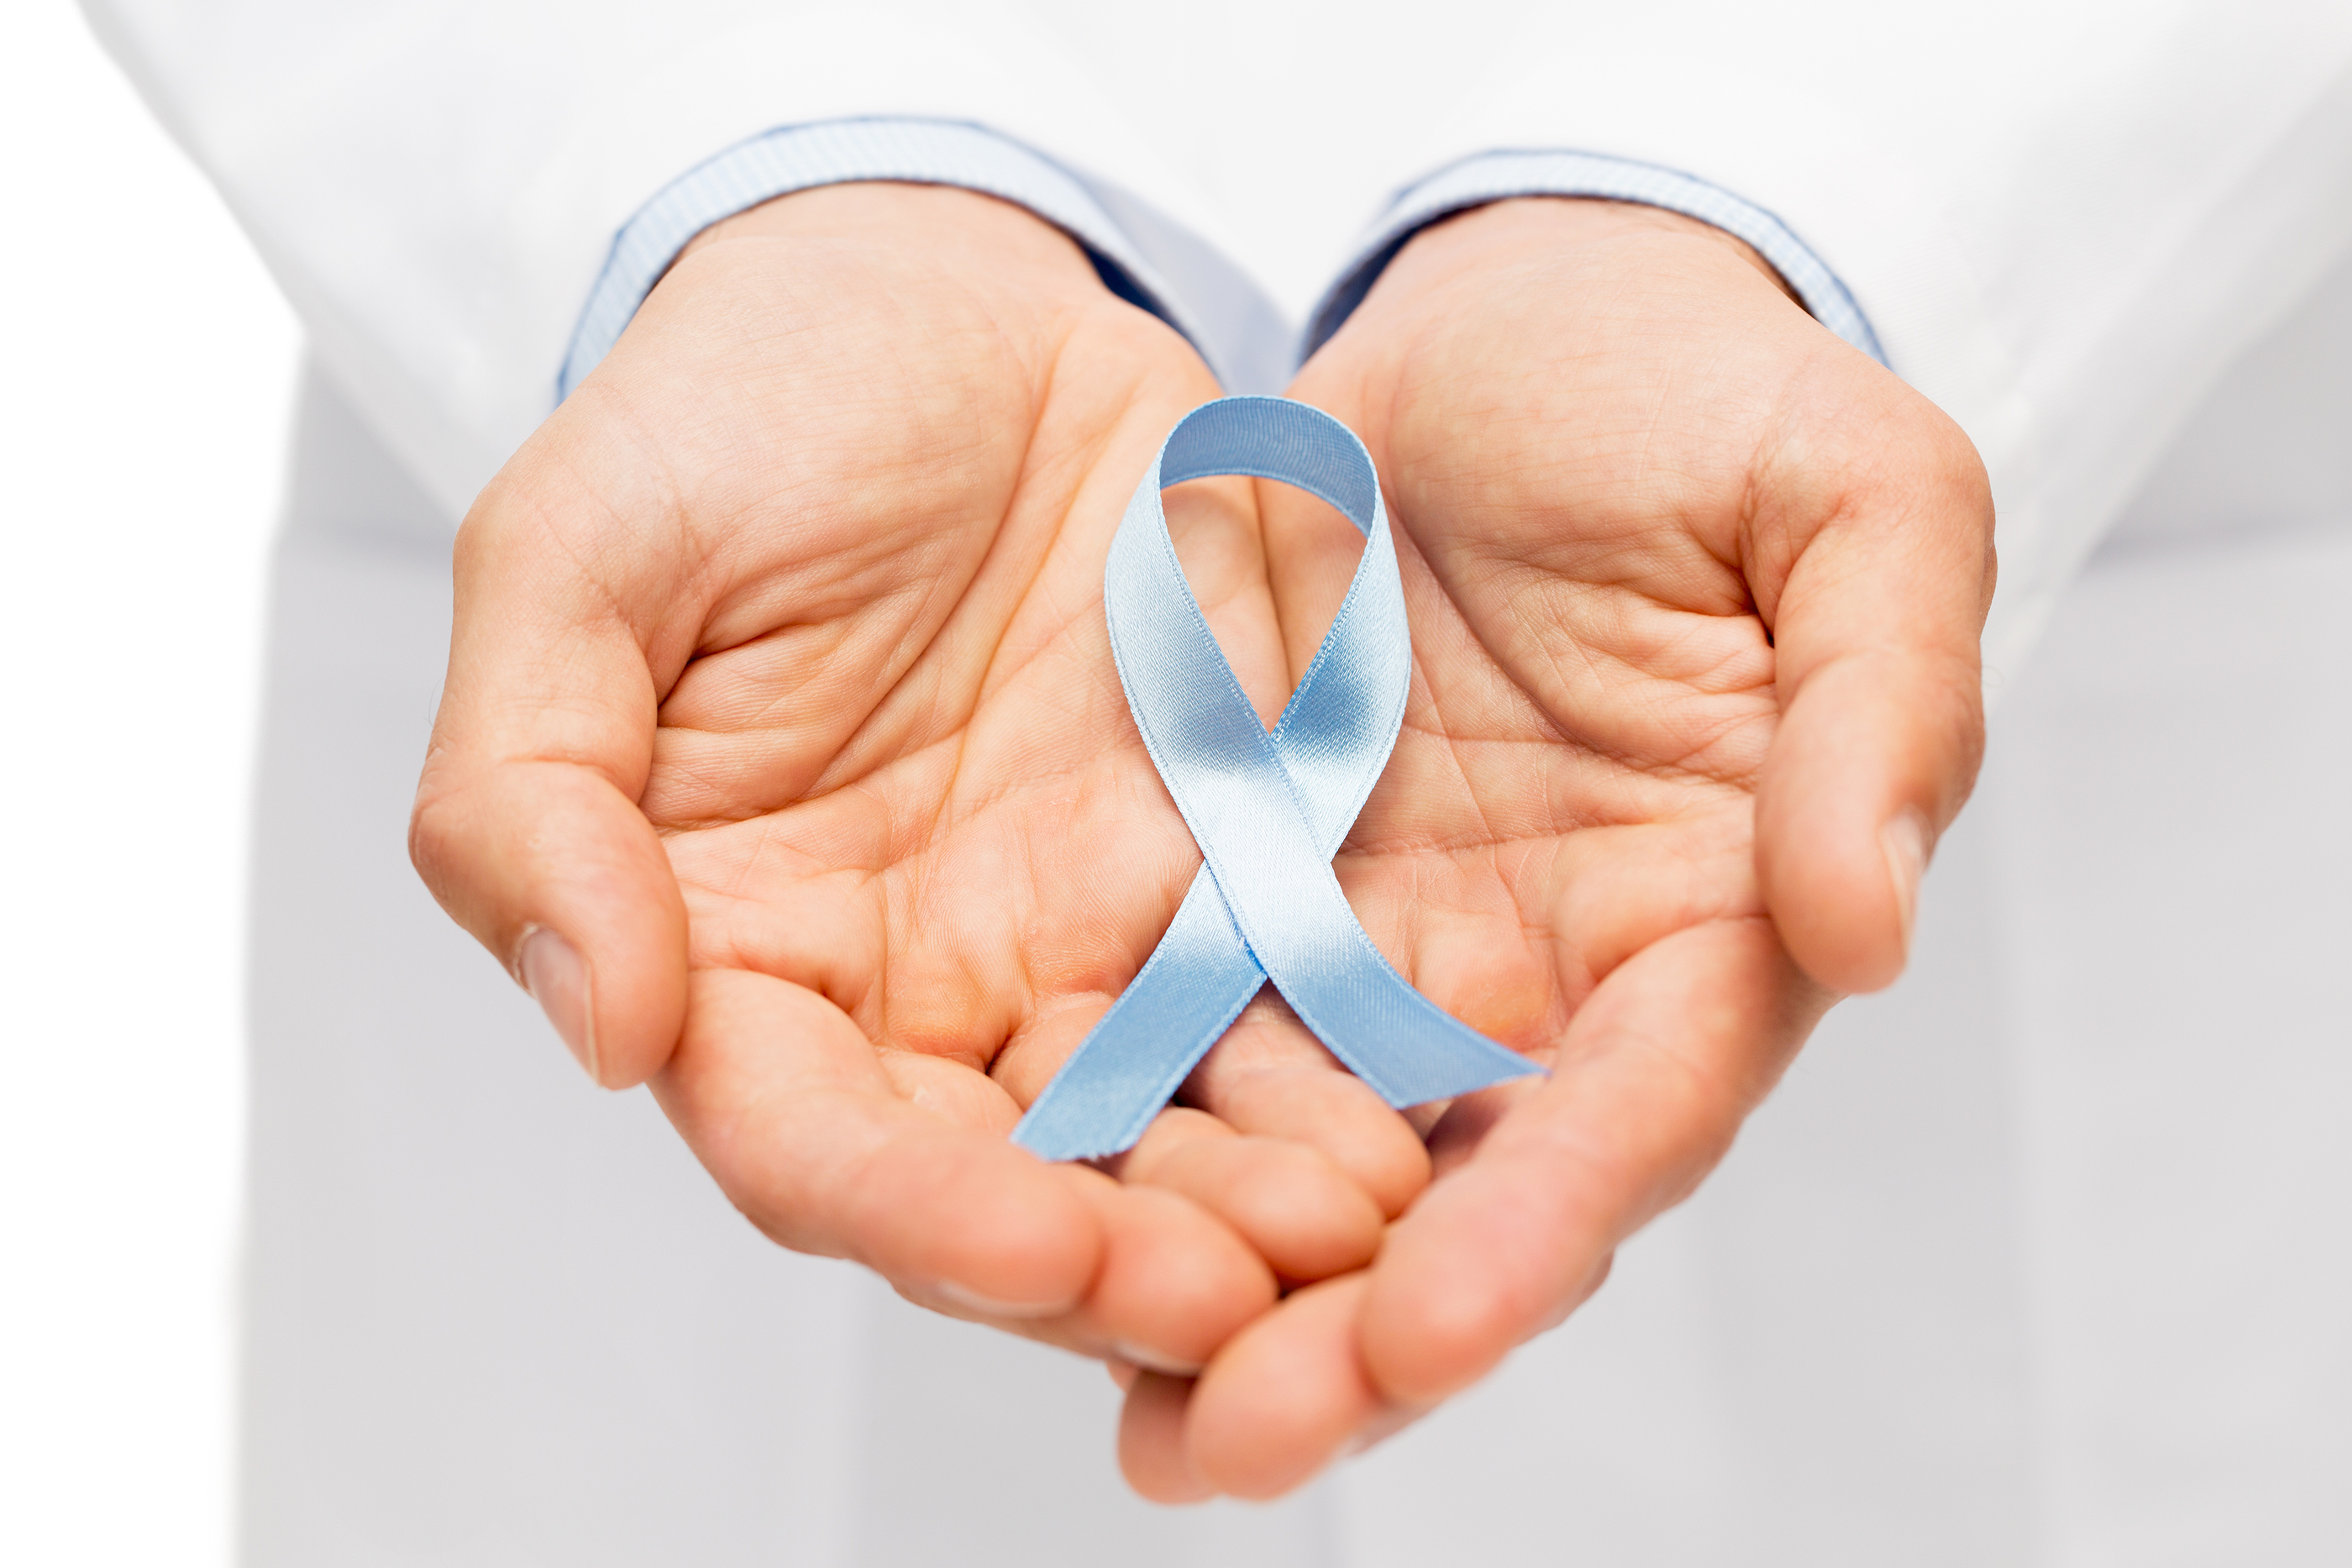 healthcare, profession, people and medicine concept - close up of male doctor hands holding sky blue prostate cancer awareness ribbon